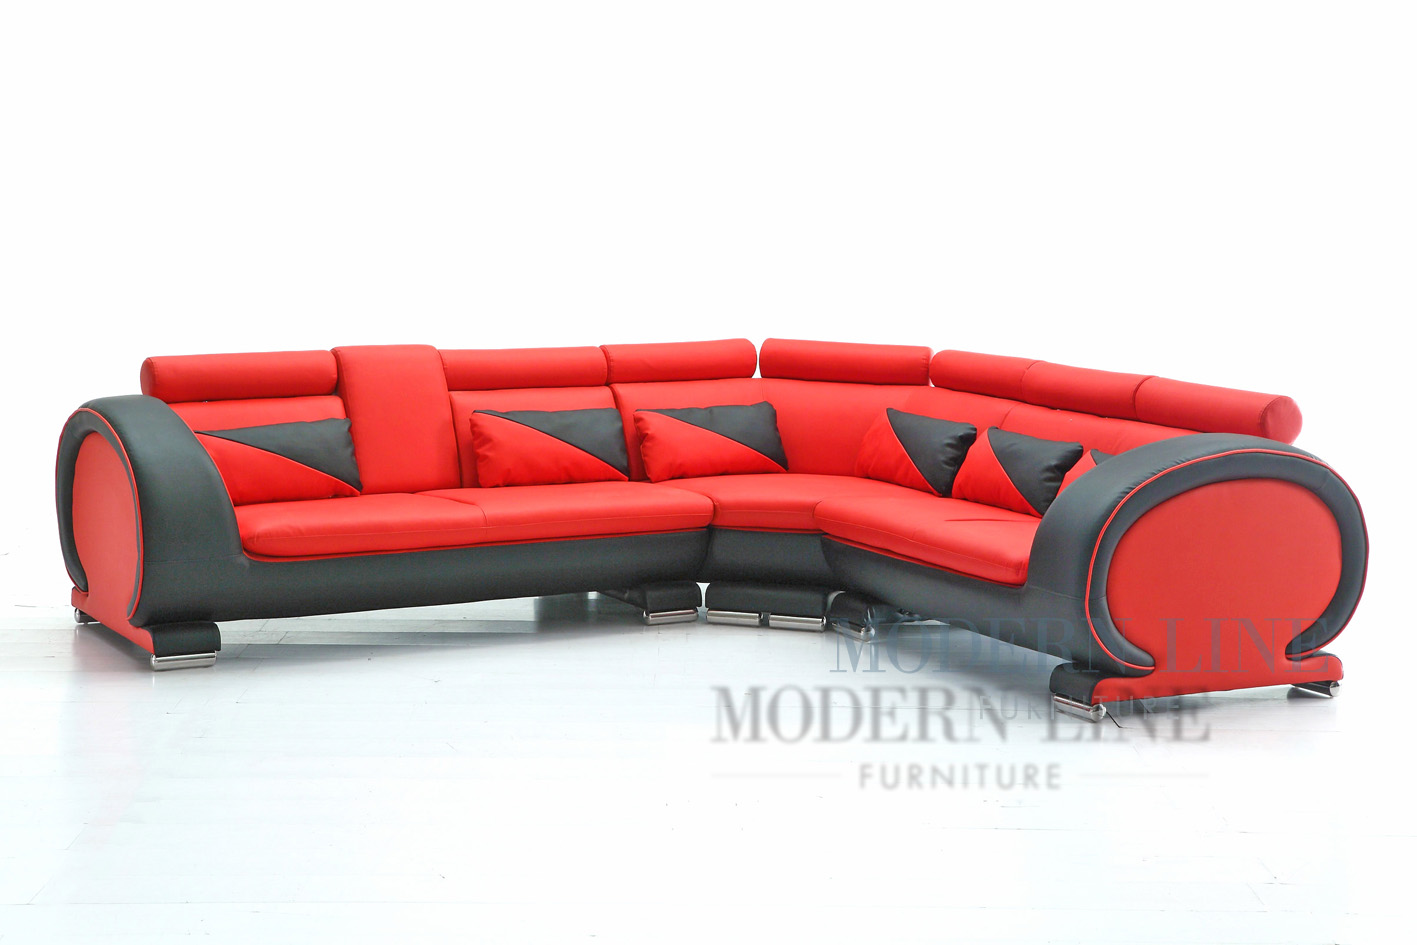 Modern Line Furniture - Commercial Furniture - Custom Made Furniture | Modern Red and Black Leather Sectional Sofa  sc 1 st  Modern Line Furniture : red and black sectional sofa - Sectionals, Sofas & Couches